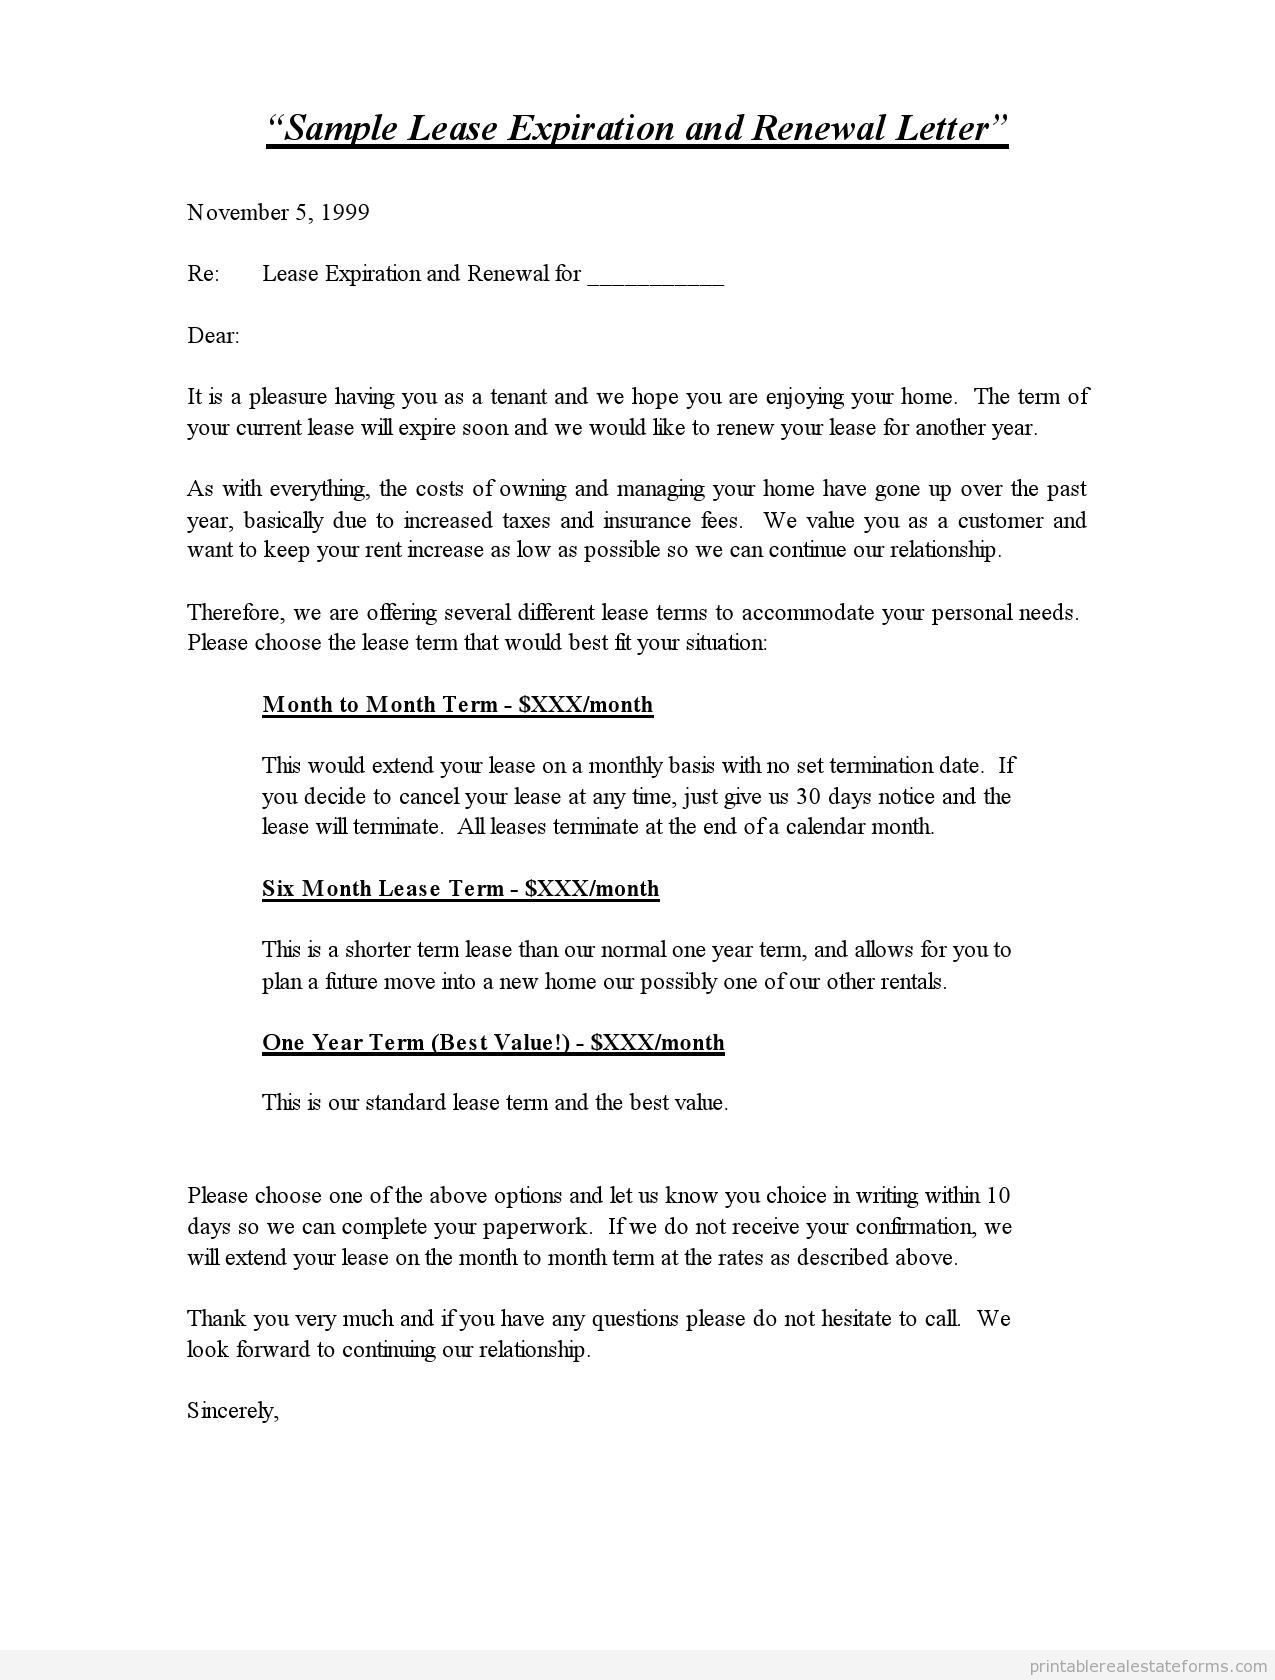 Printable Sample Lease Expiration And Renewal Letter Template 2015